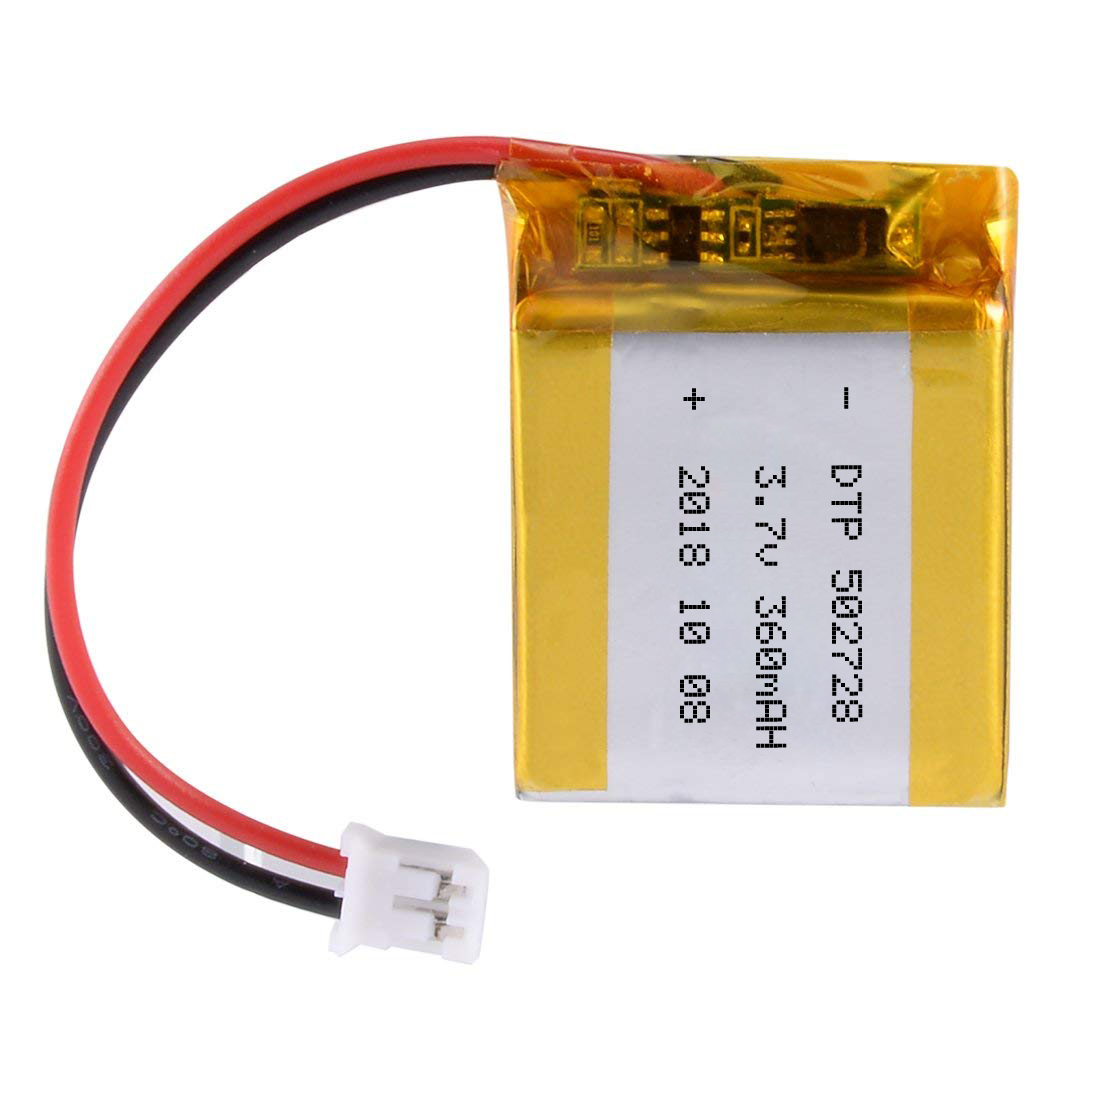 DTP502728 3.7V 360mAh Li Polymer Battery with Protection Circuit and JST Connector